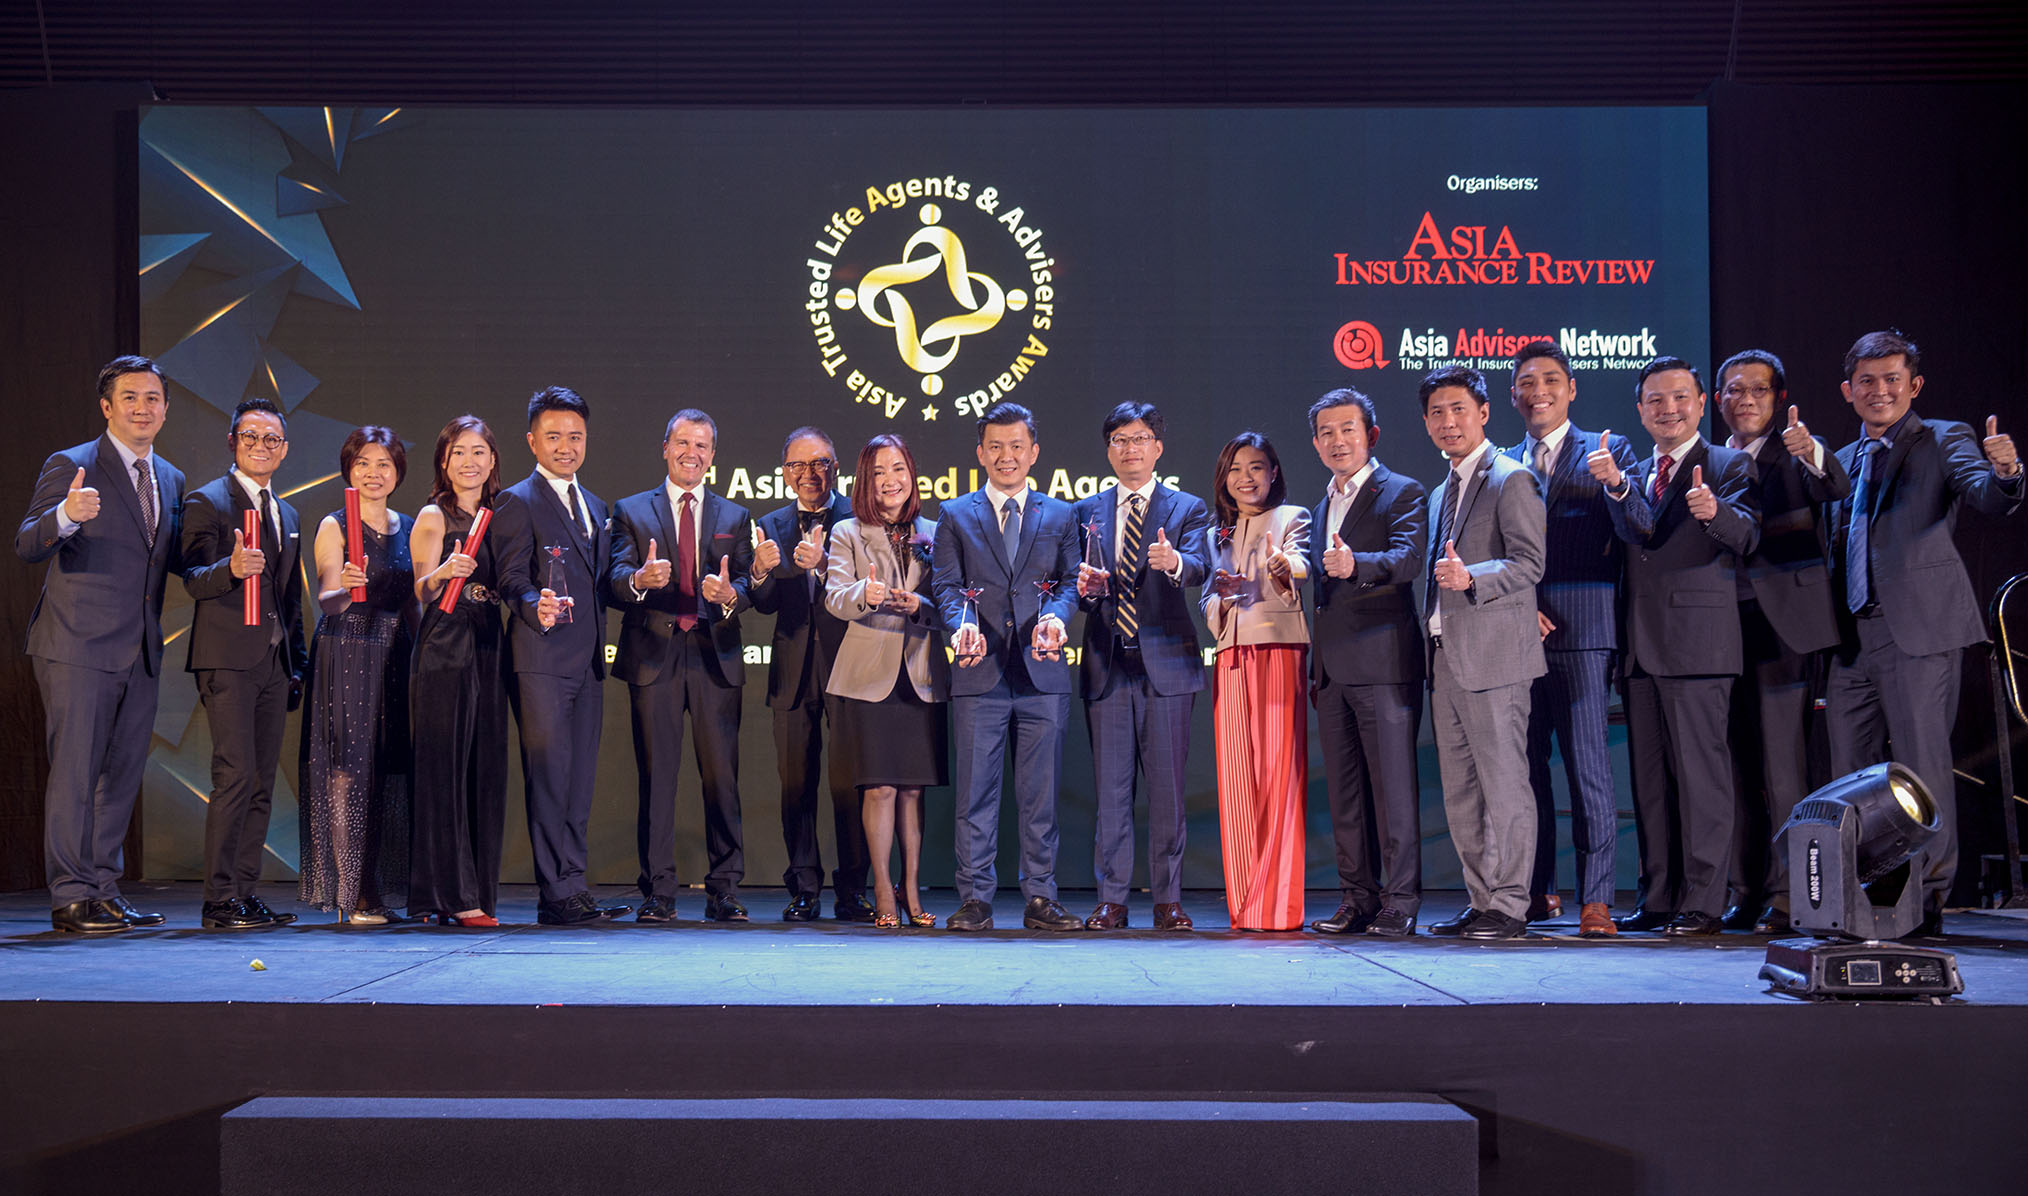 4th asia trusted life agents & advisers awards